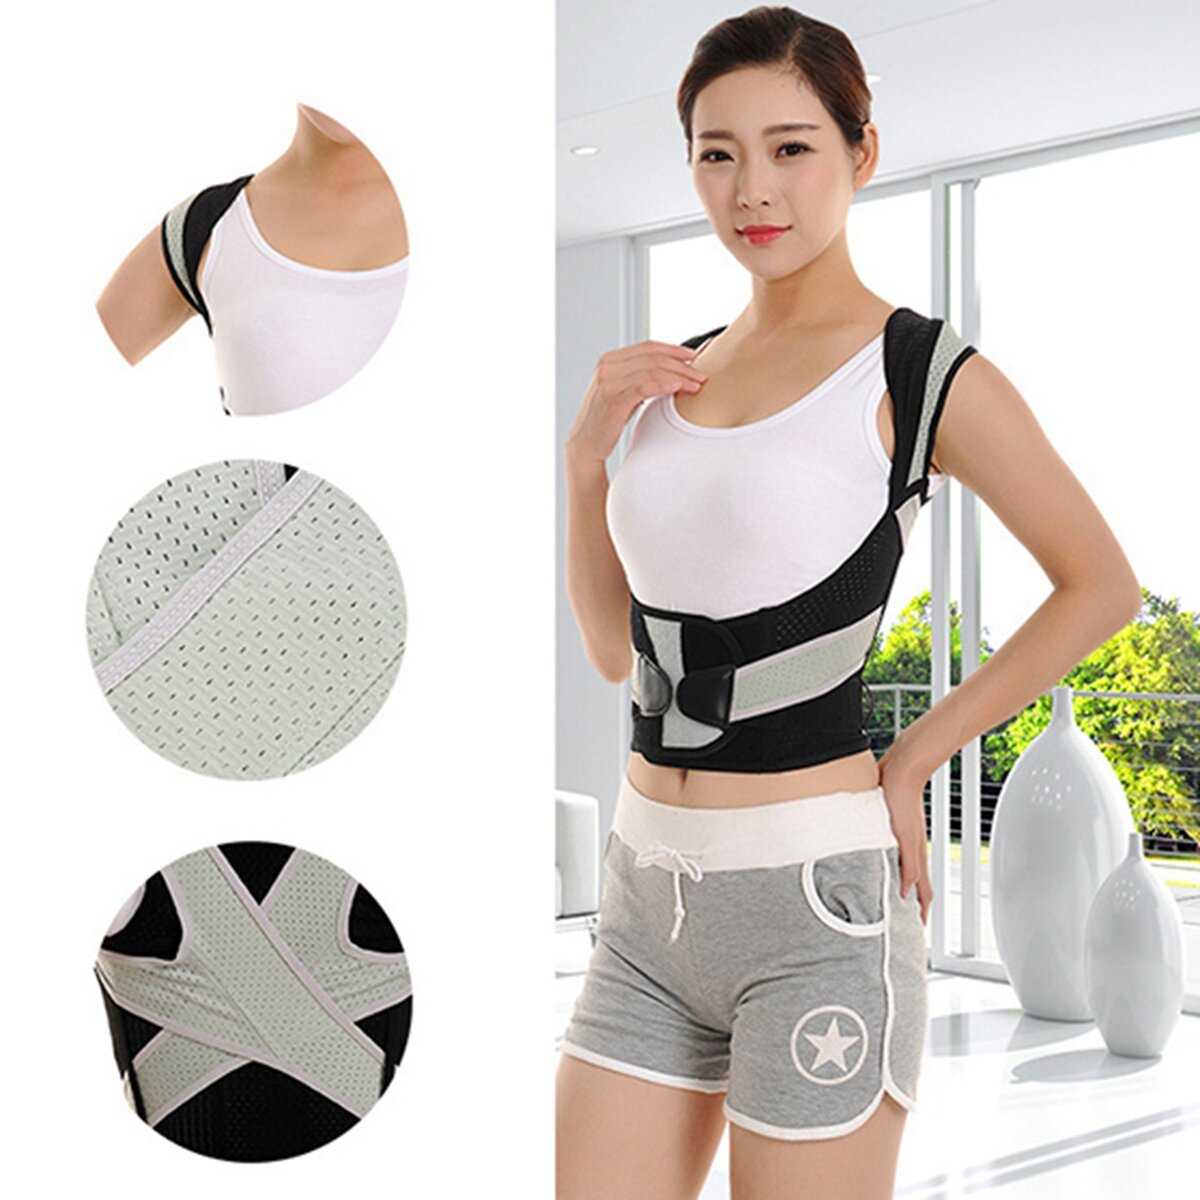 Corrector de postura ajustable Cinturón Corsé Kyphosis Humpback Correction Back Shoulder Support